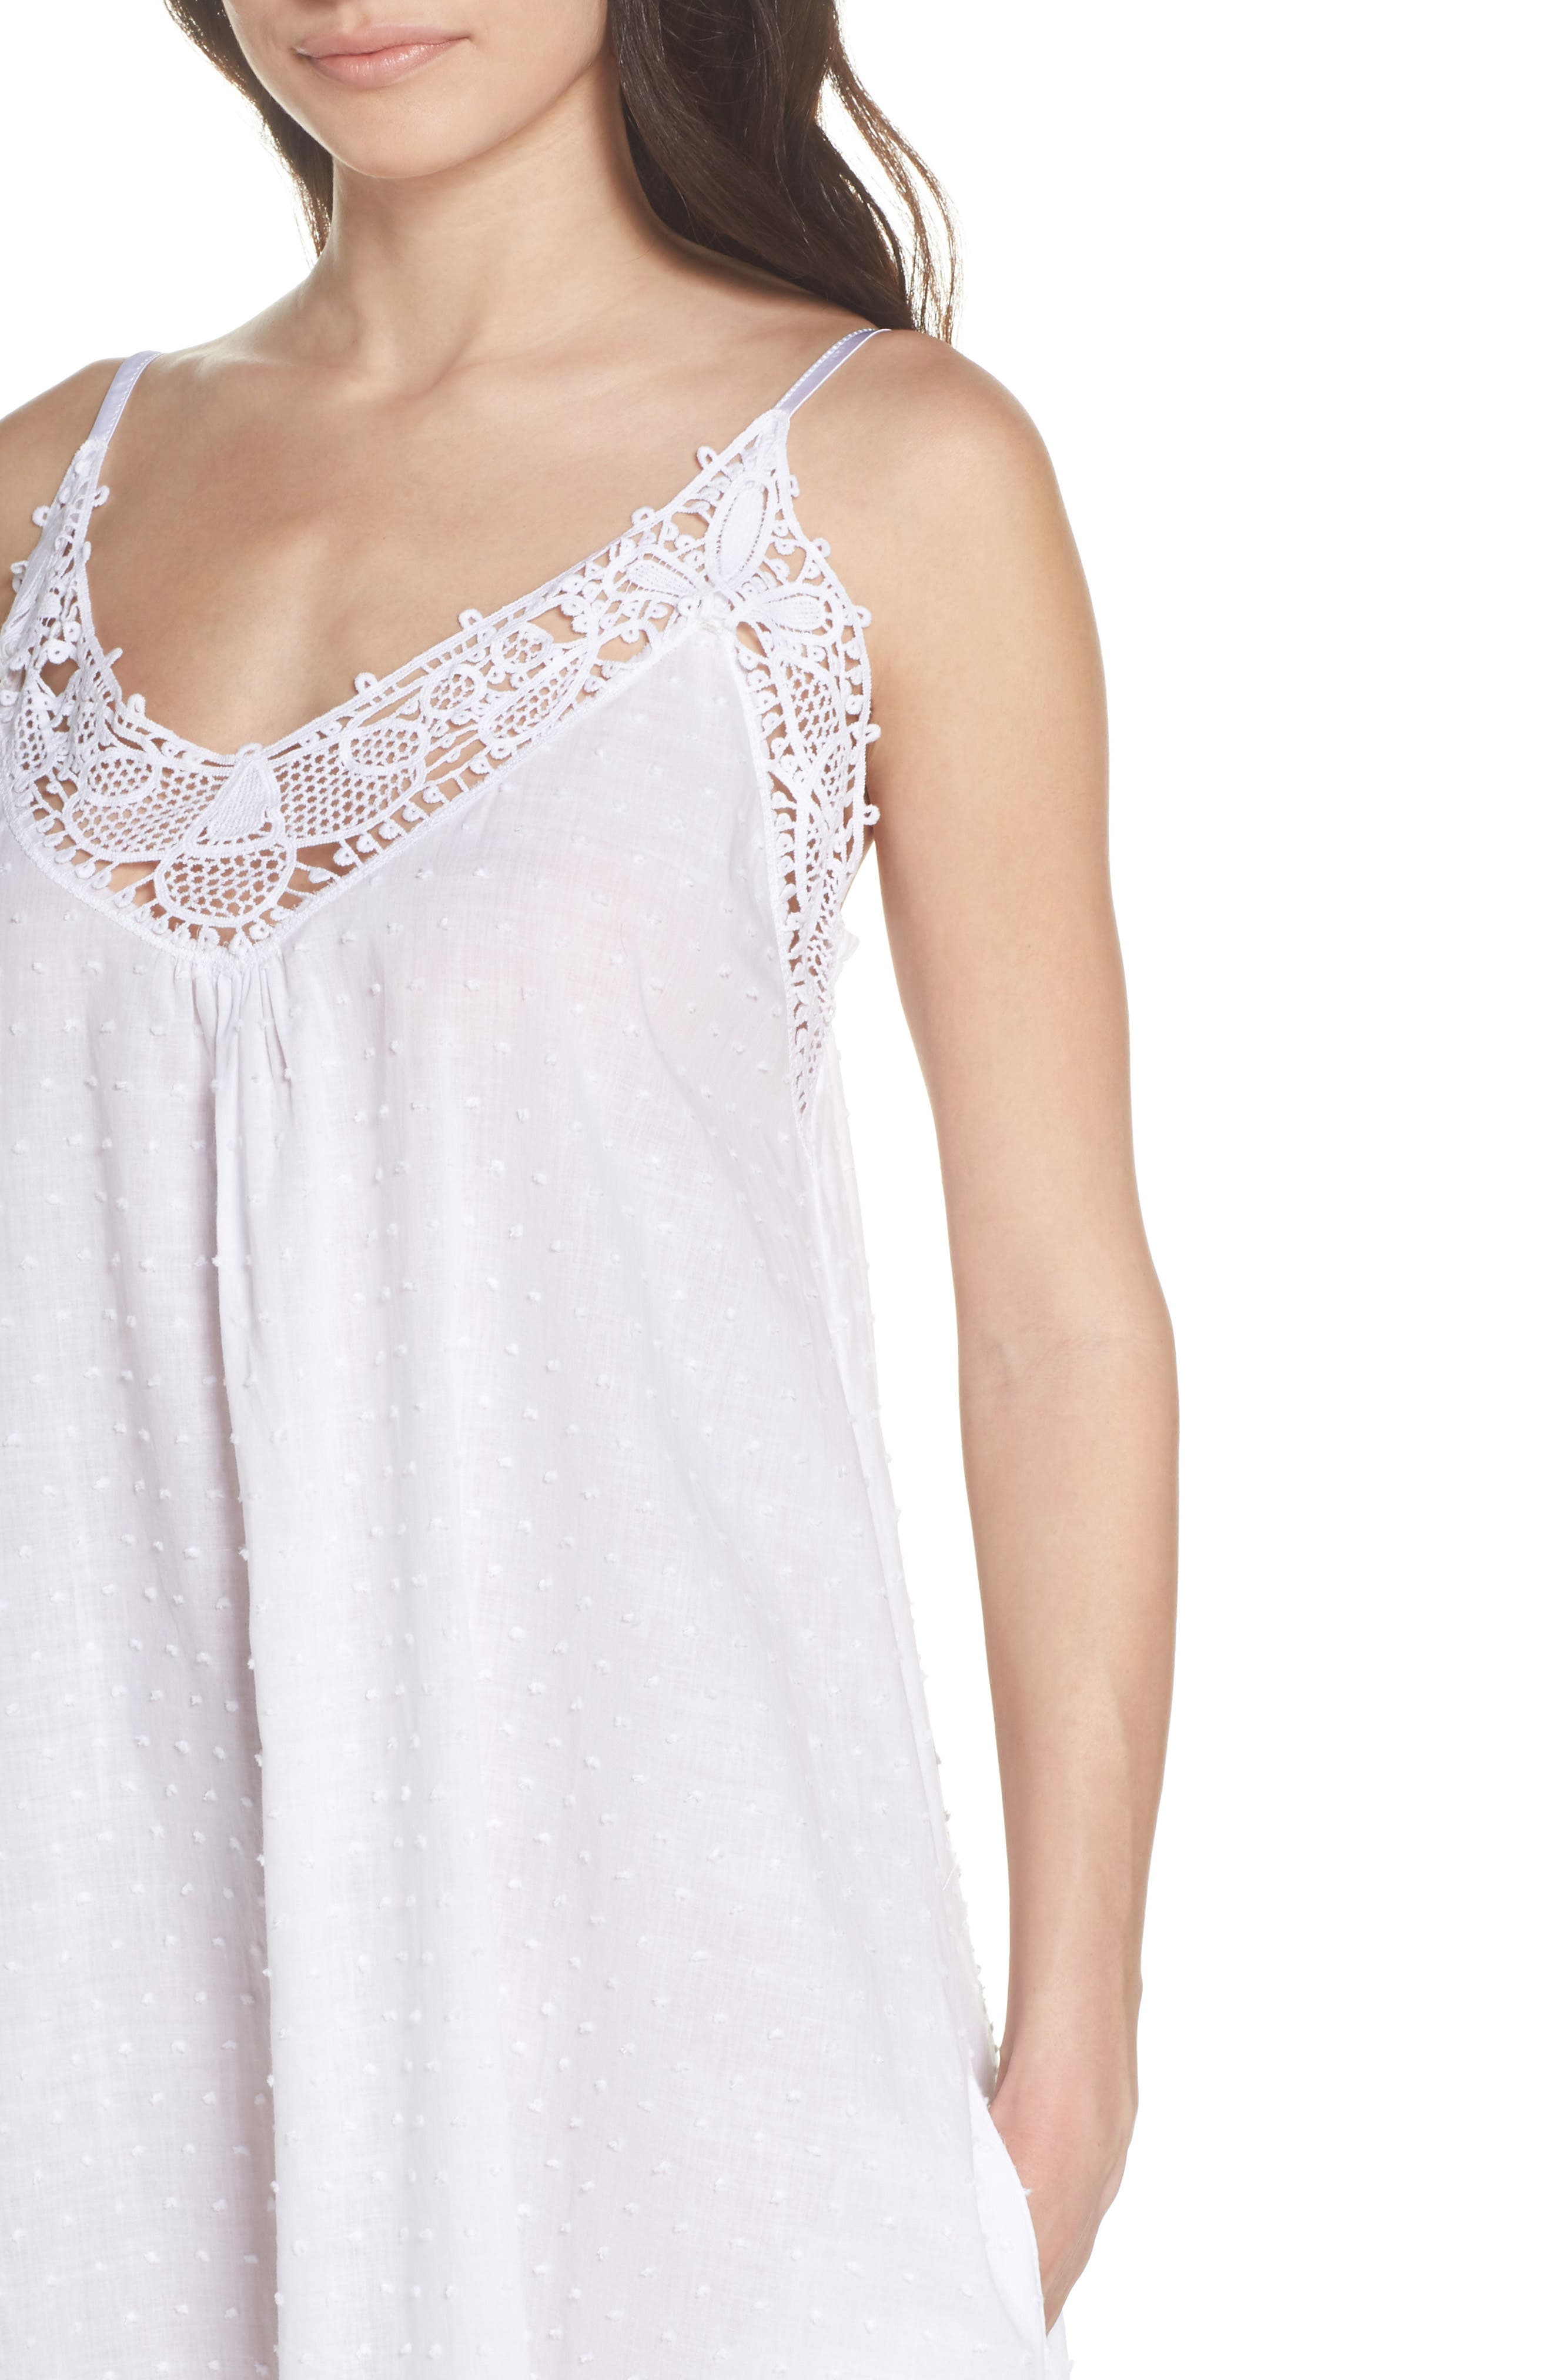 Swiss Dot Nightgown,                             Alternate thumbnail 4, color,